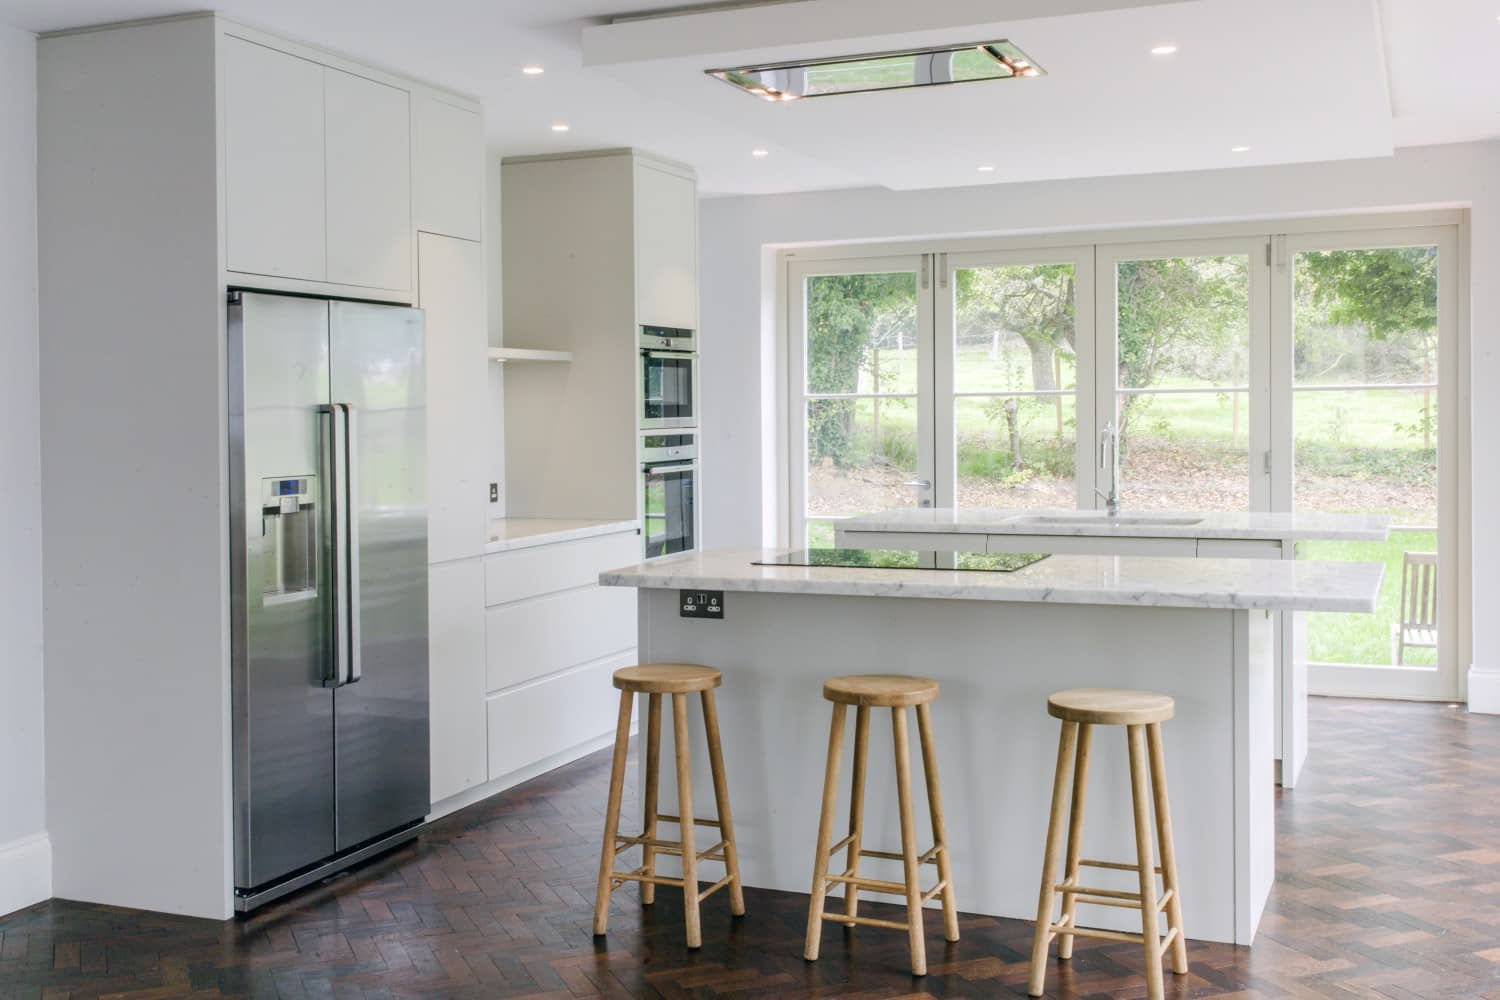 Bespoke kitchen renovation in Bath